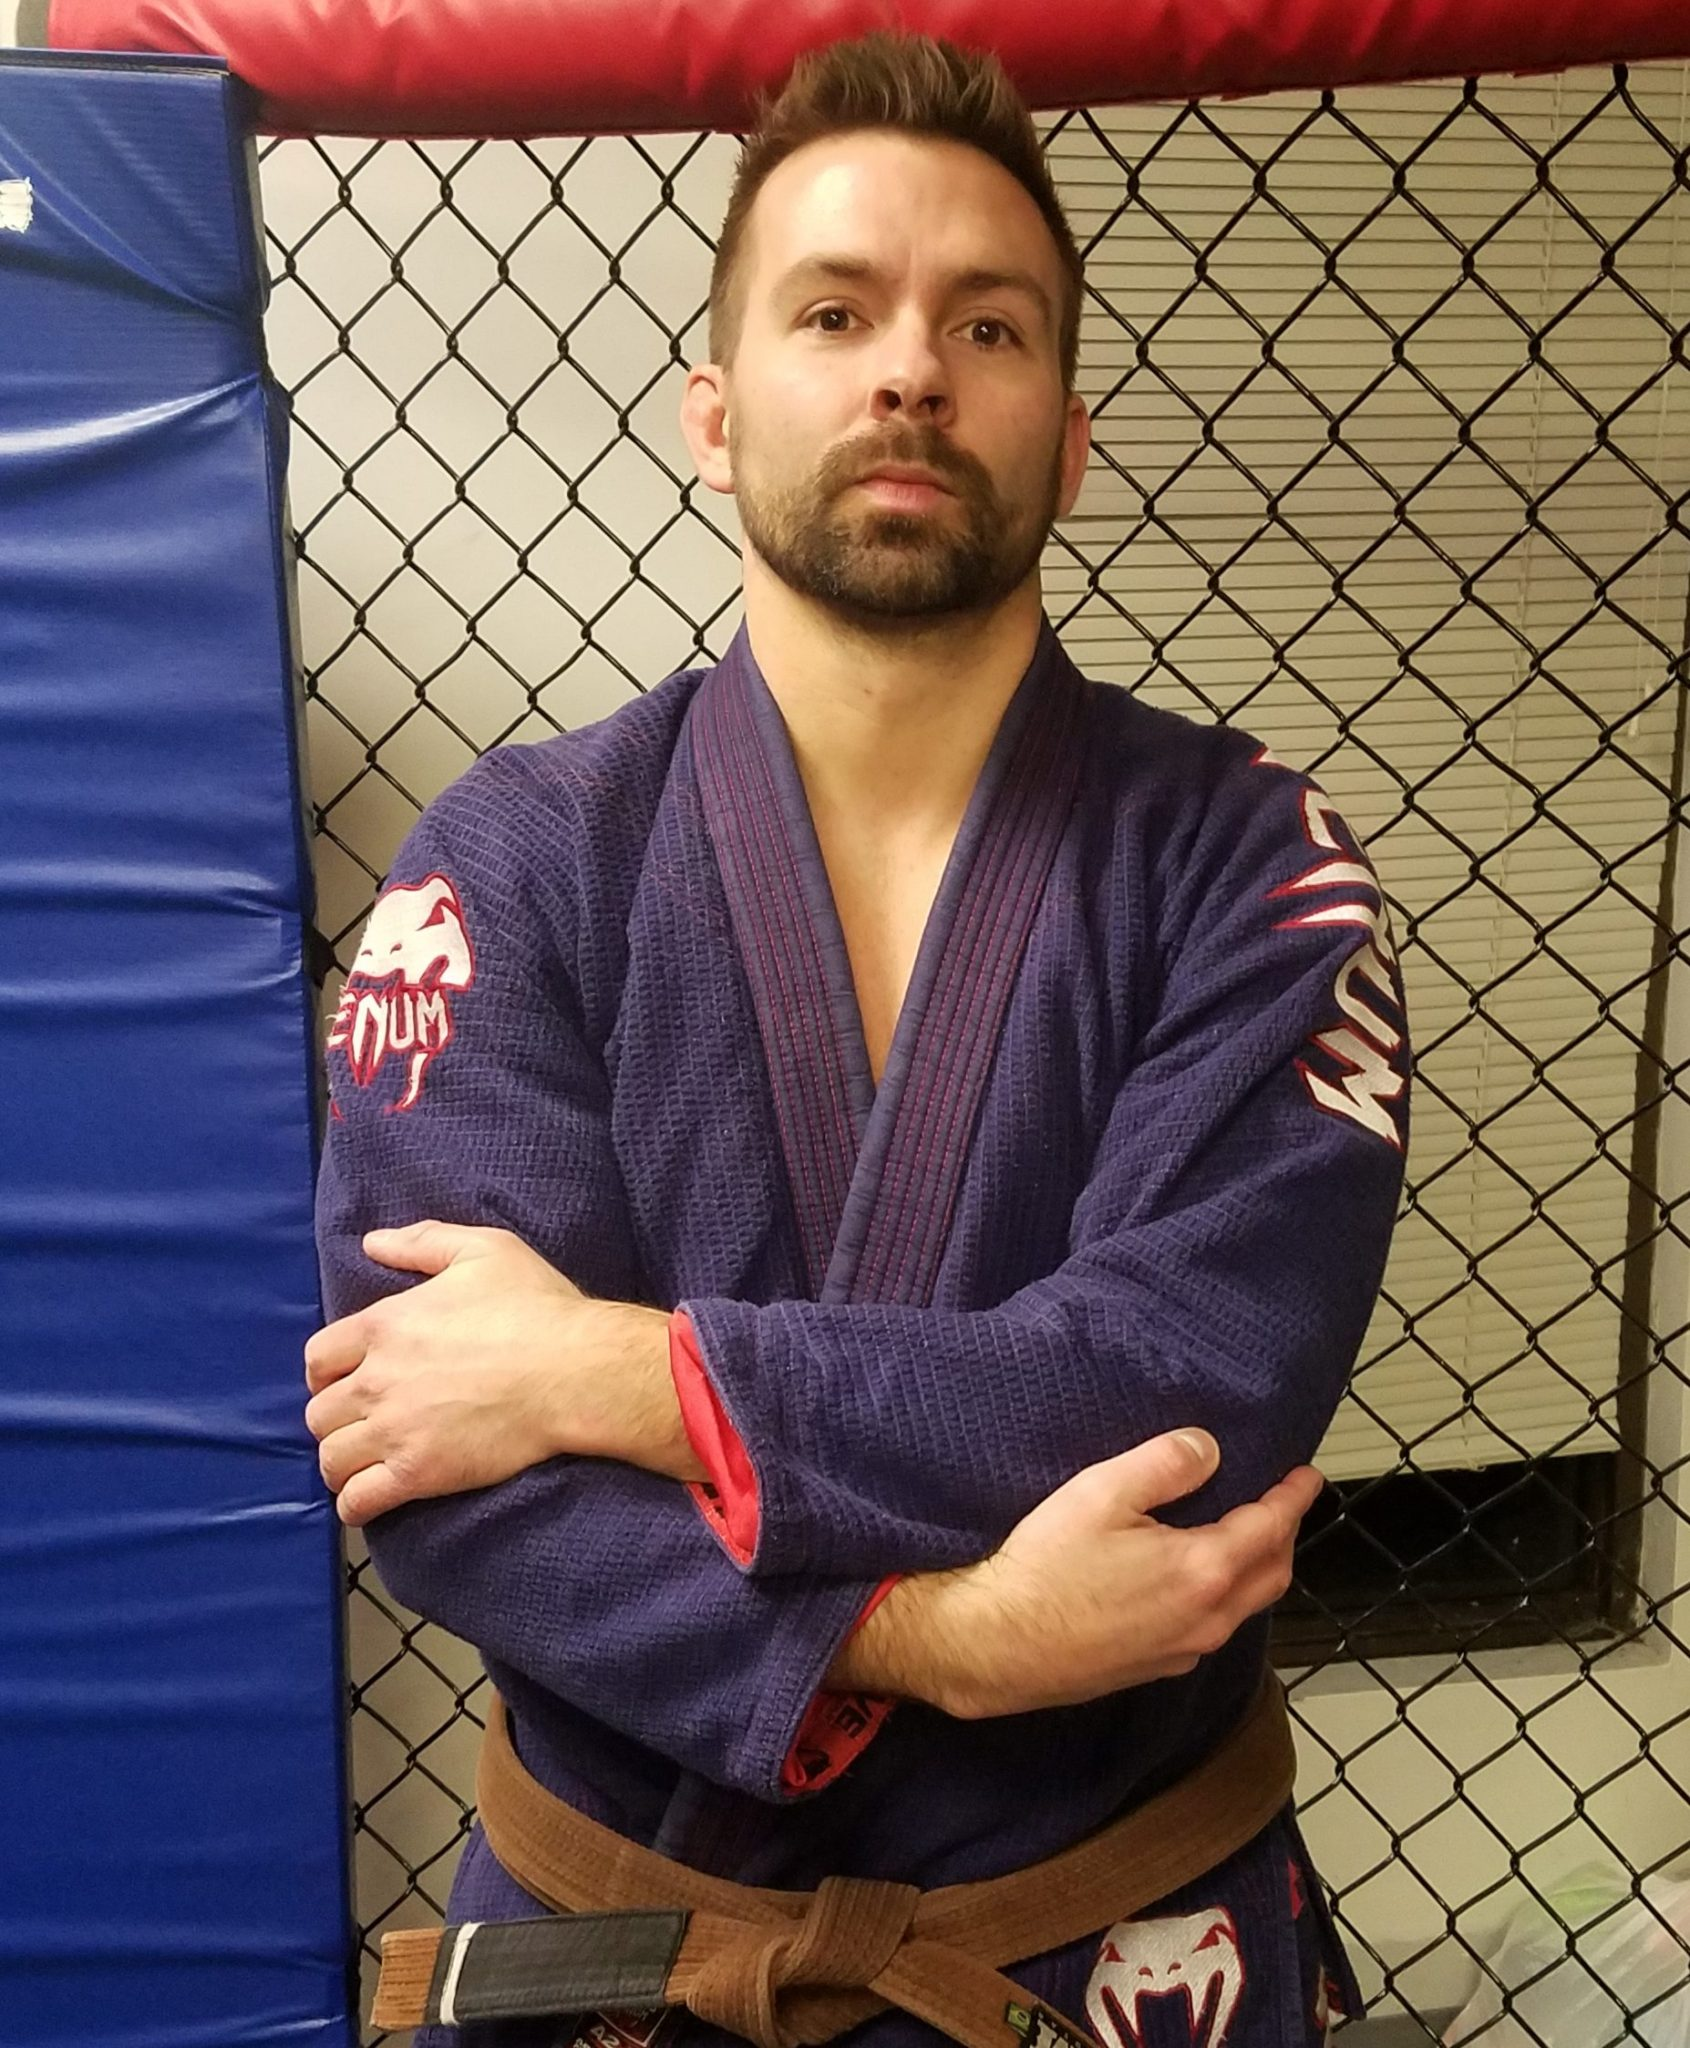 BJJ instructor Scot Huning